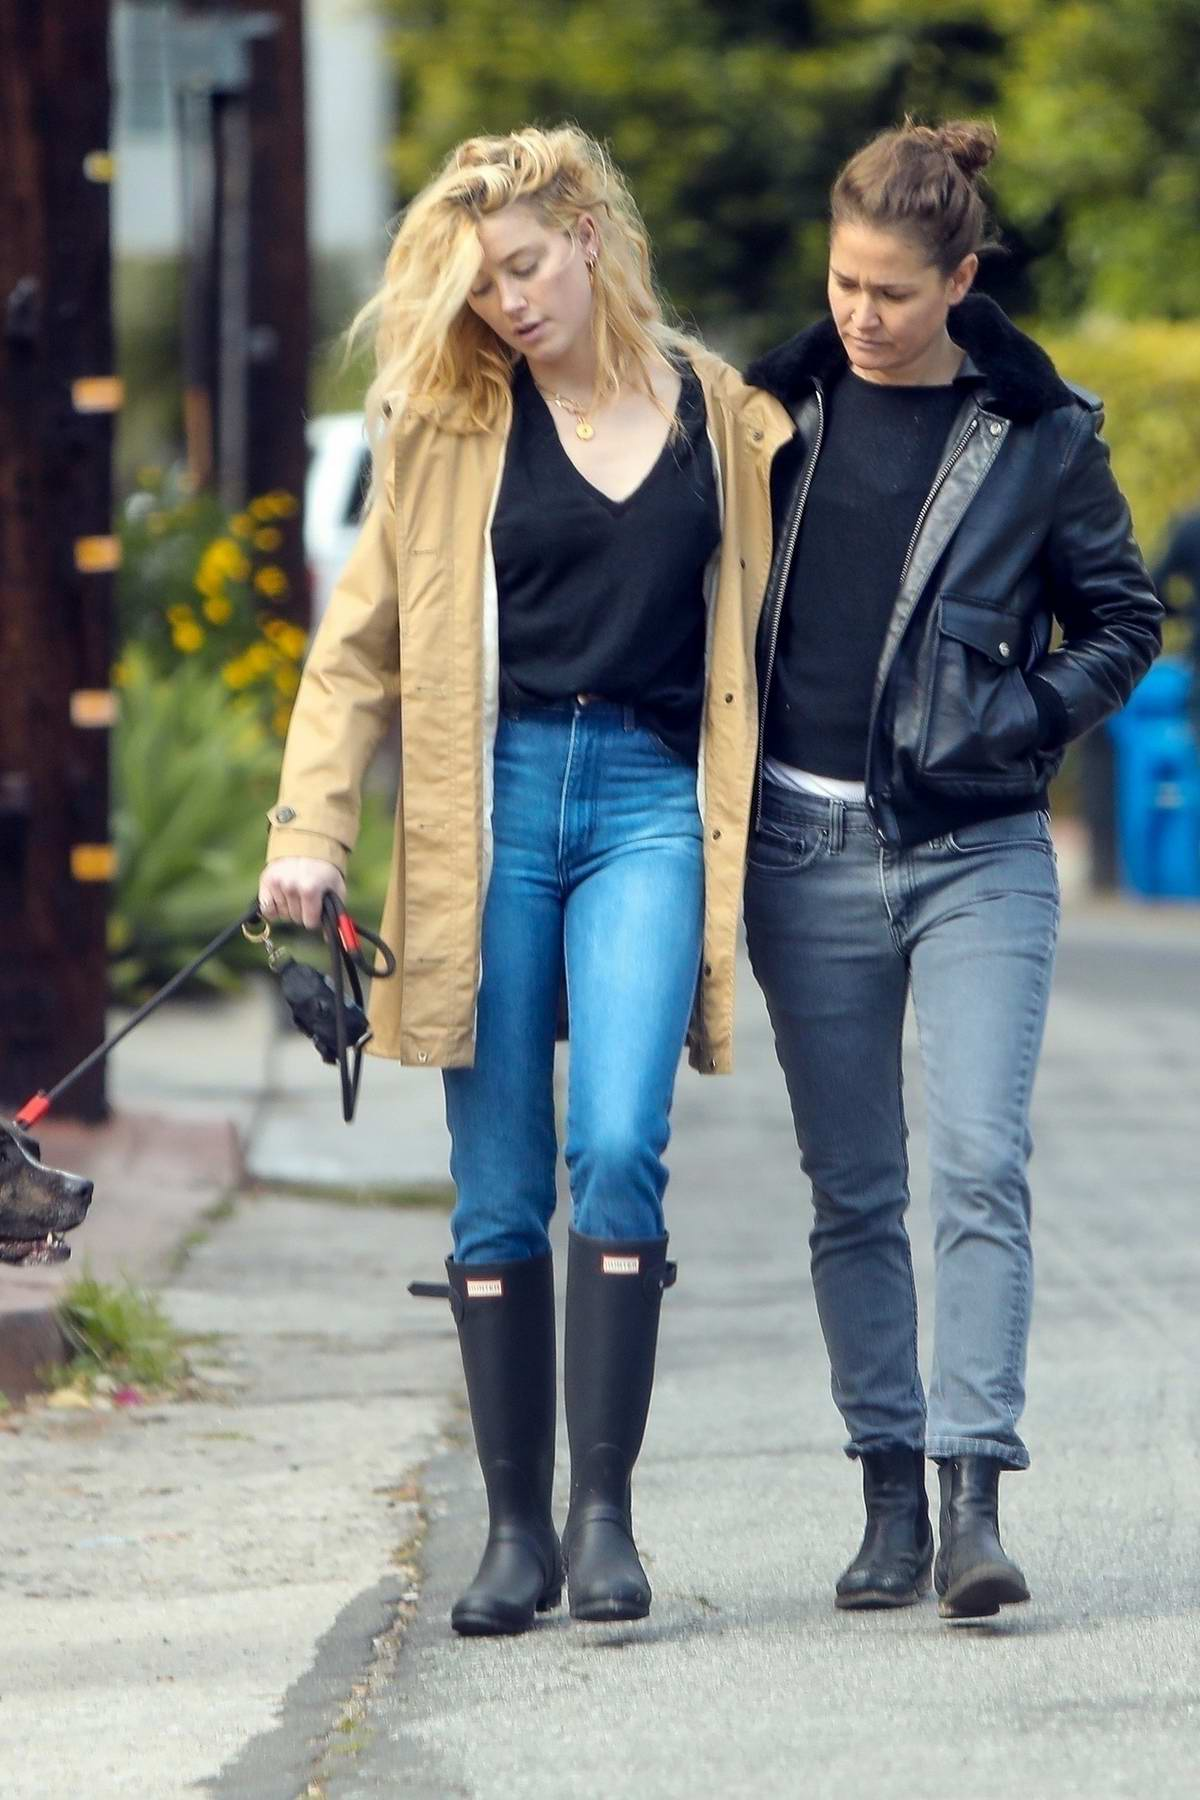 Amber Heard takes and girlfriend Bianca Butti step out for stroll amid 'Stay-at-Home' order in Los Angeles